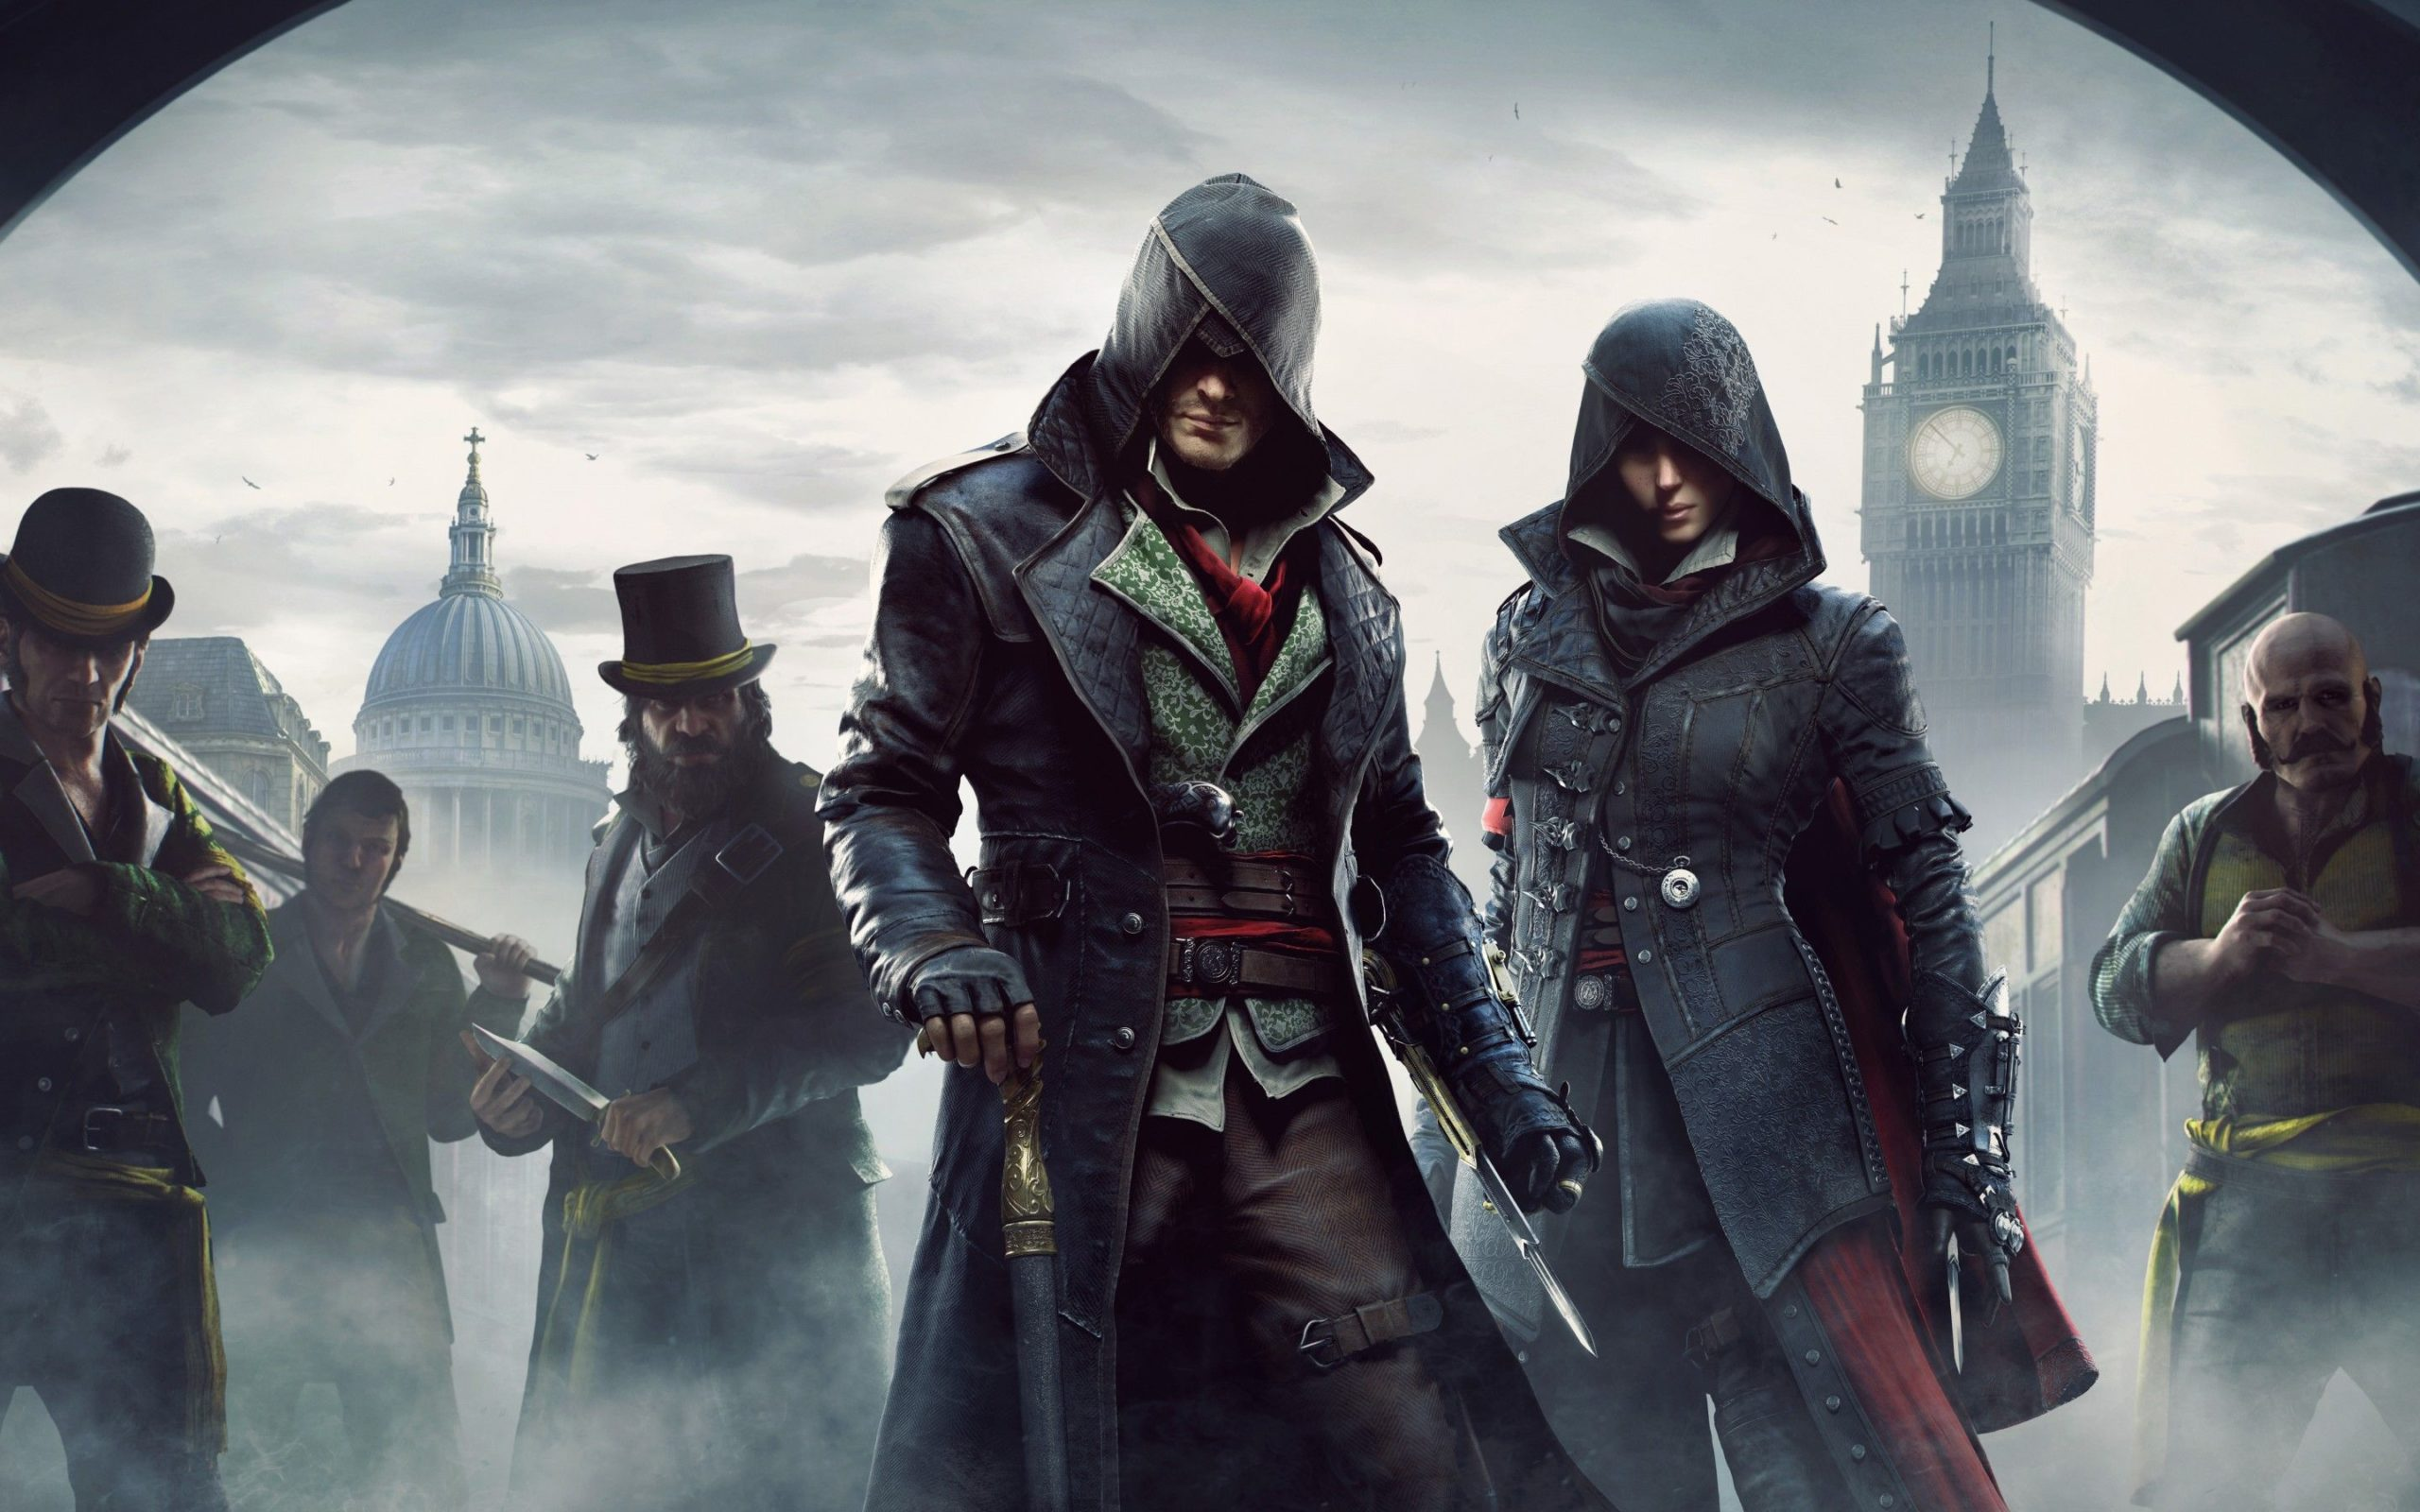 assassin's creed images in hd